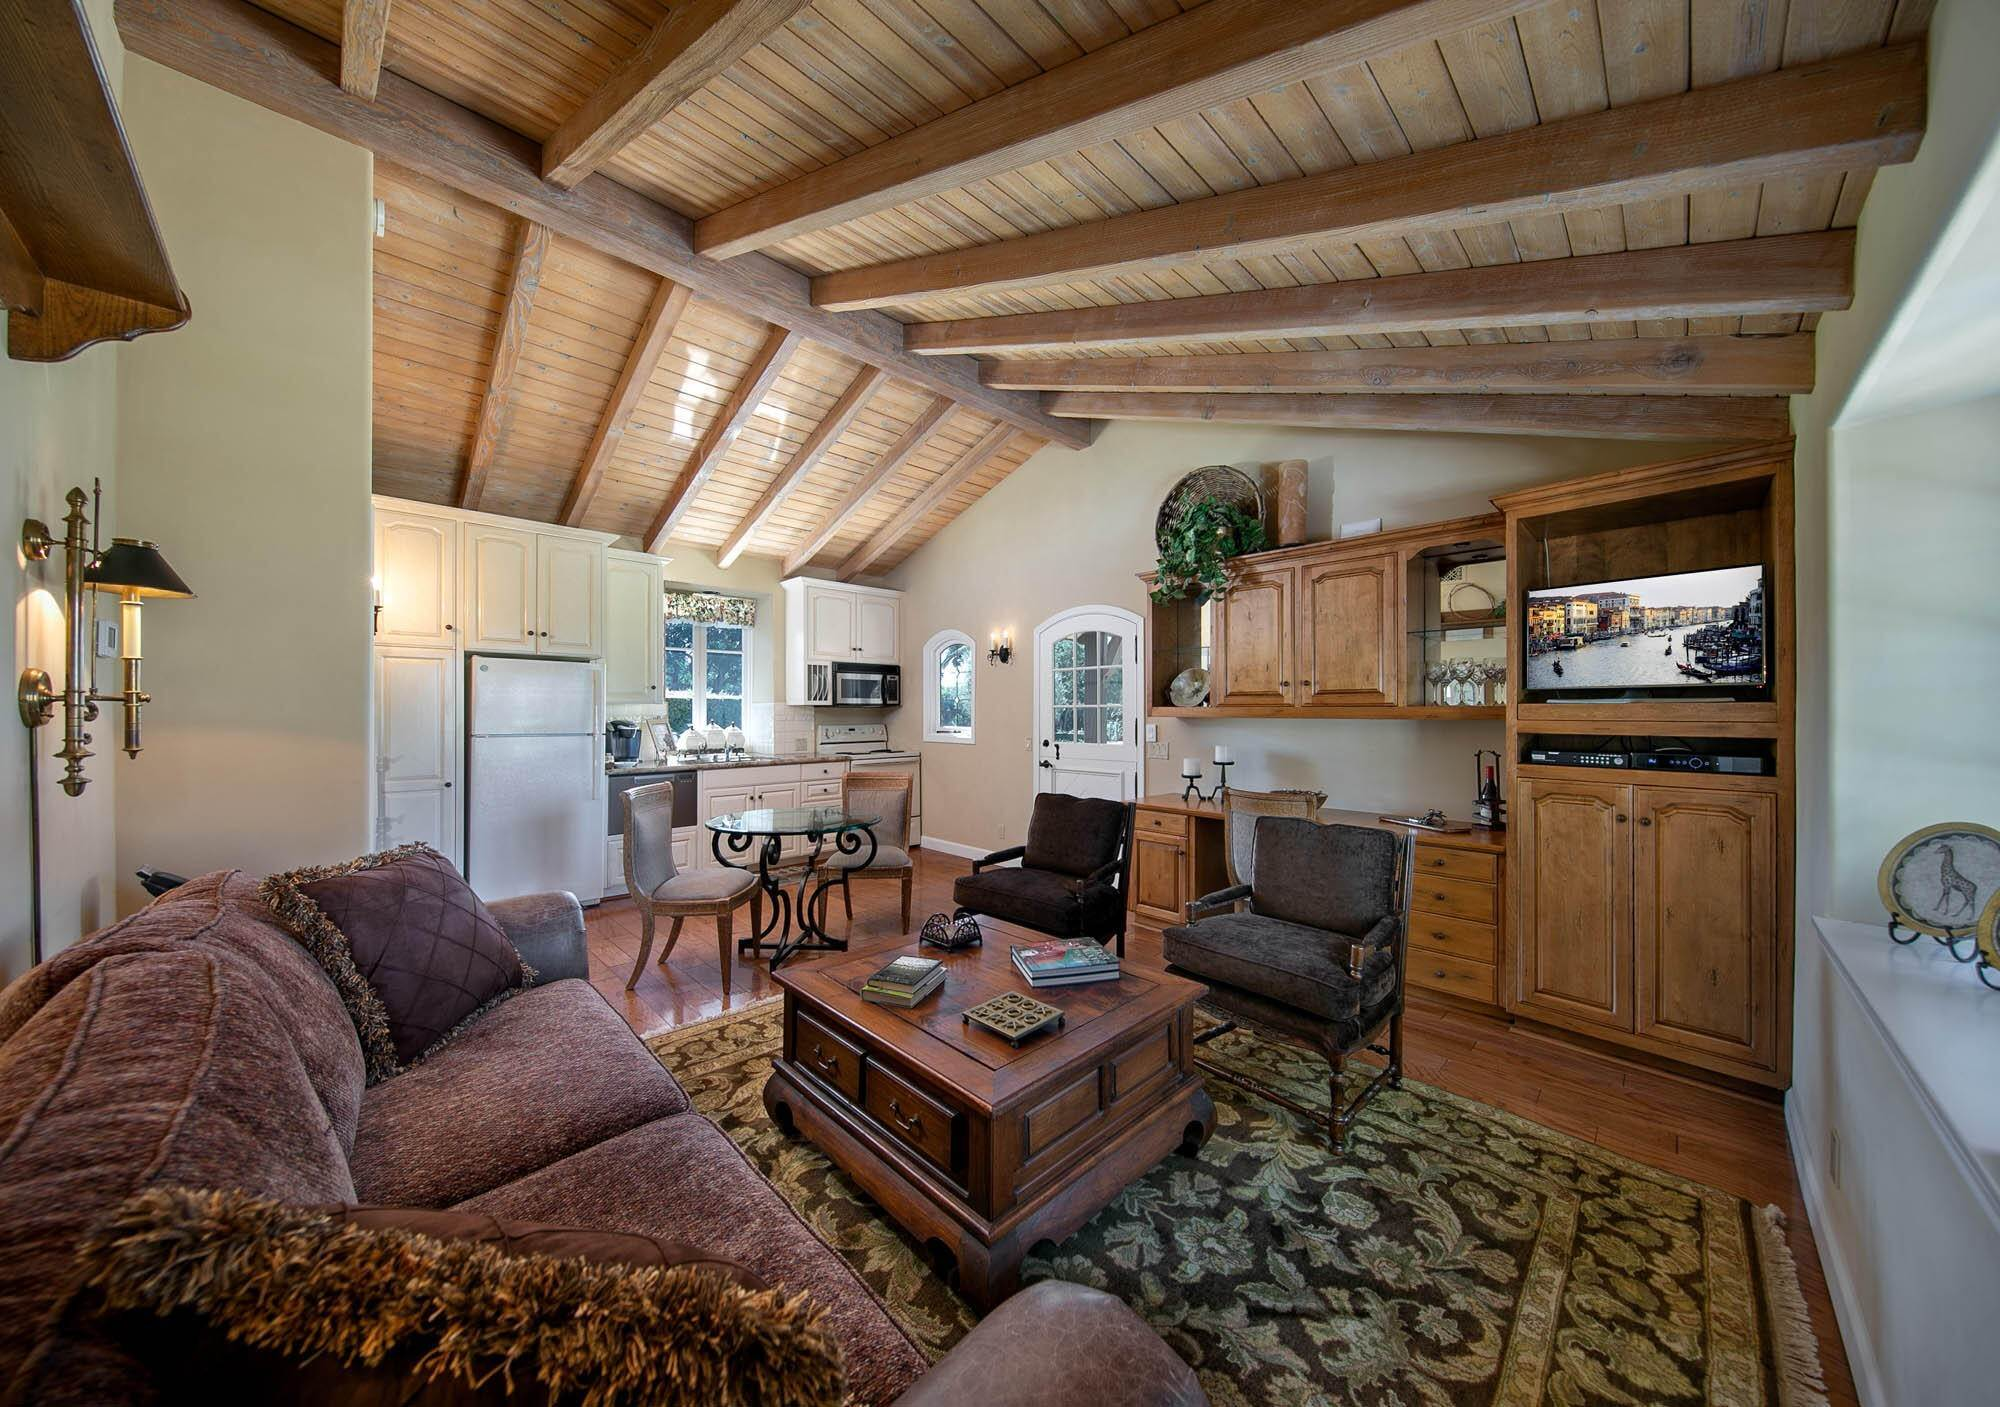 21. Estate for Sale at 4180 Cresta Avenue Santa Barbara, California 93110 United States